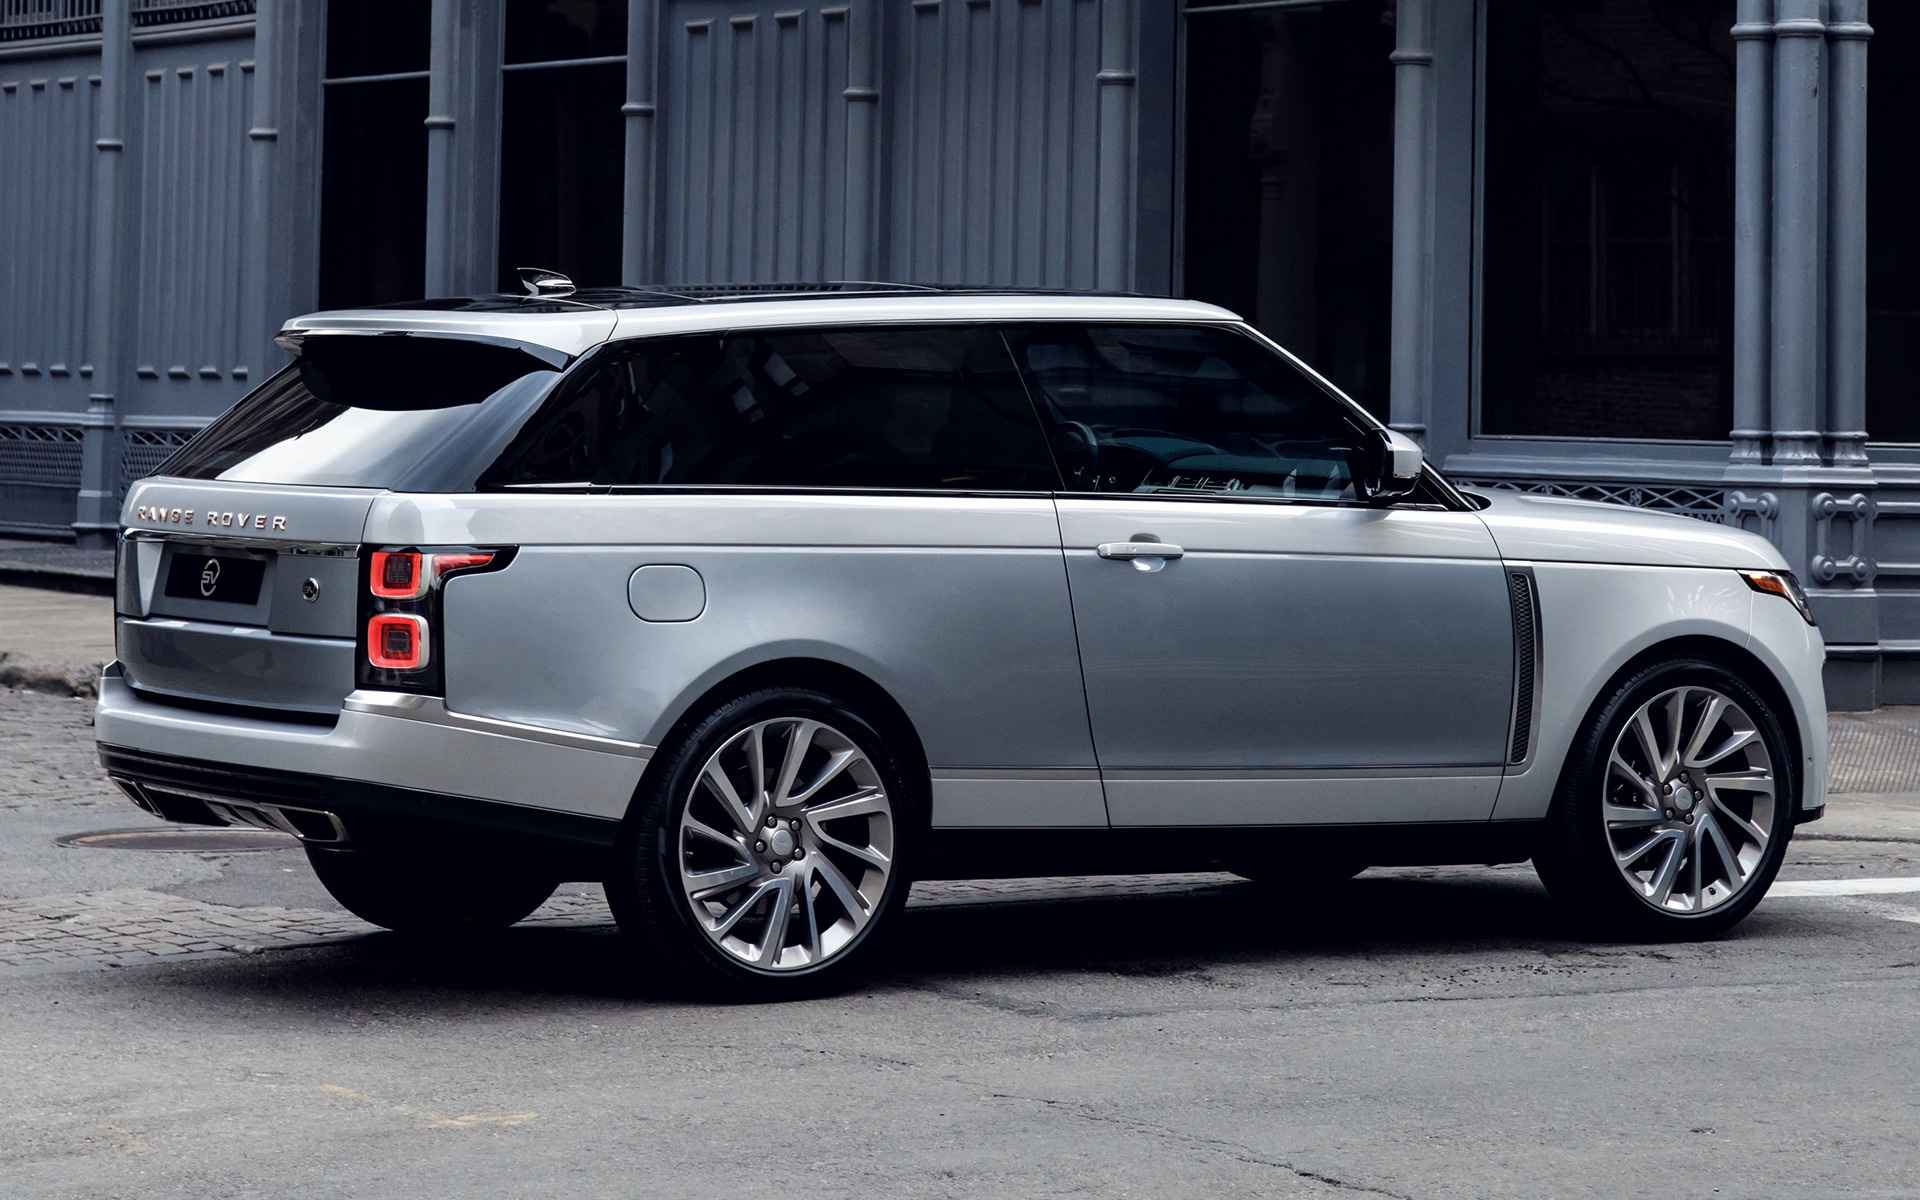 range rover sv coupe 2019 us wallpapers and hd images car pixel. Black Bedroom Furniture Sets. Home Design Ideas